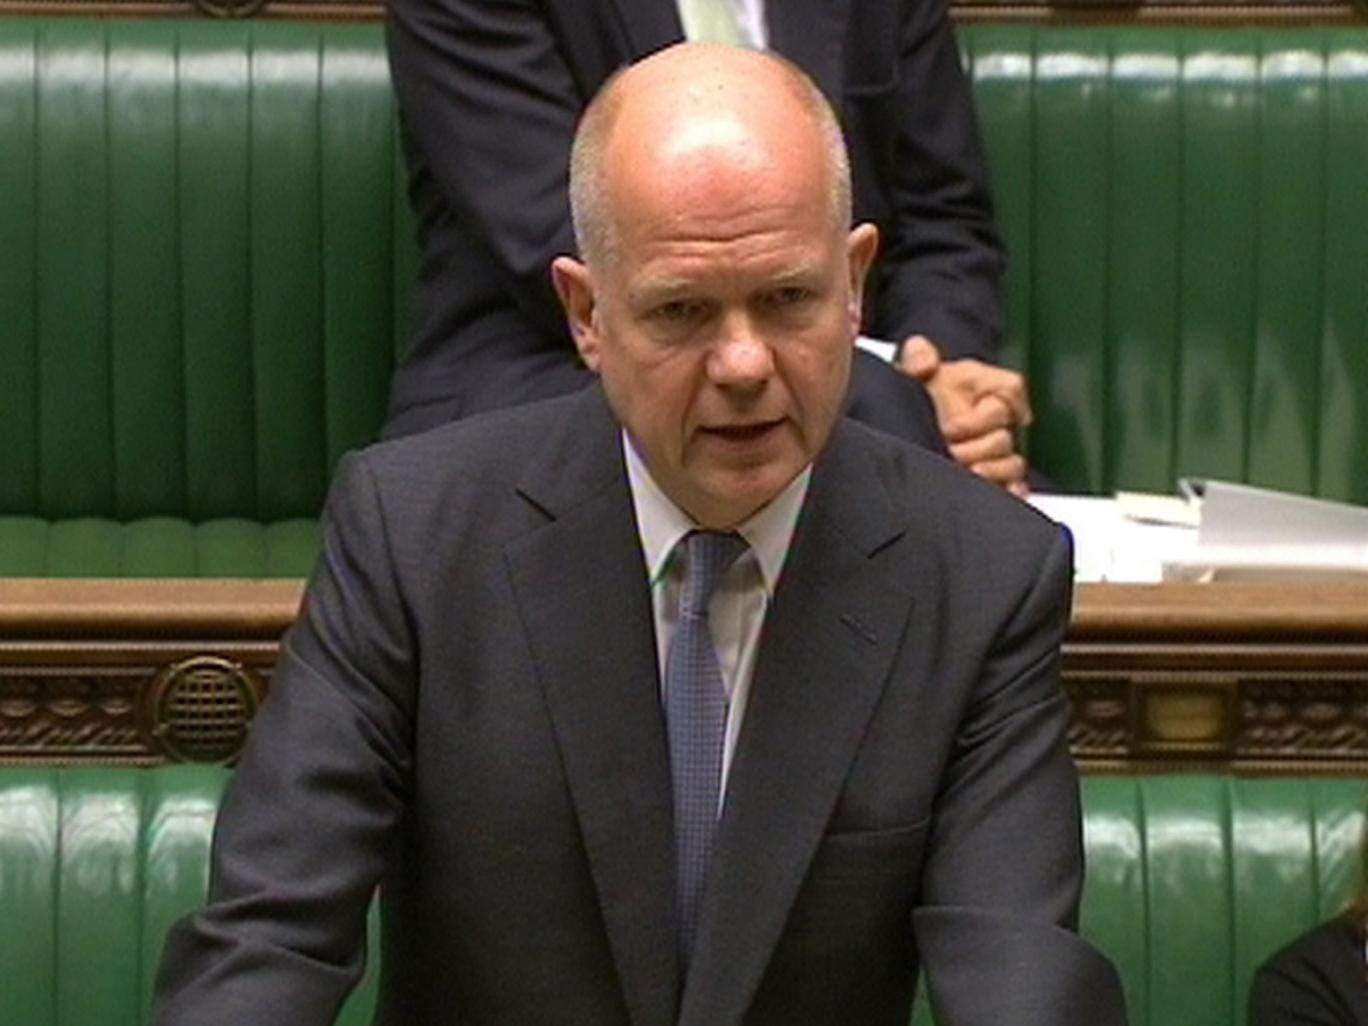 William Hague stated that the Government 'sincerely regret' the torture of thousands of Kenyan detainees